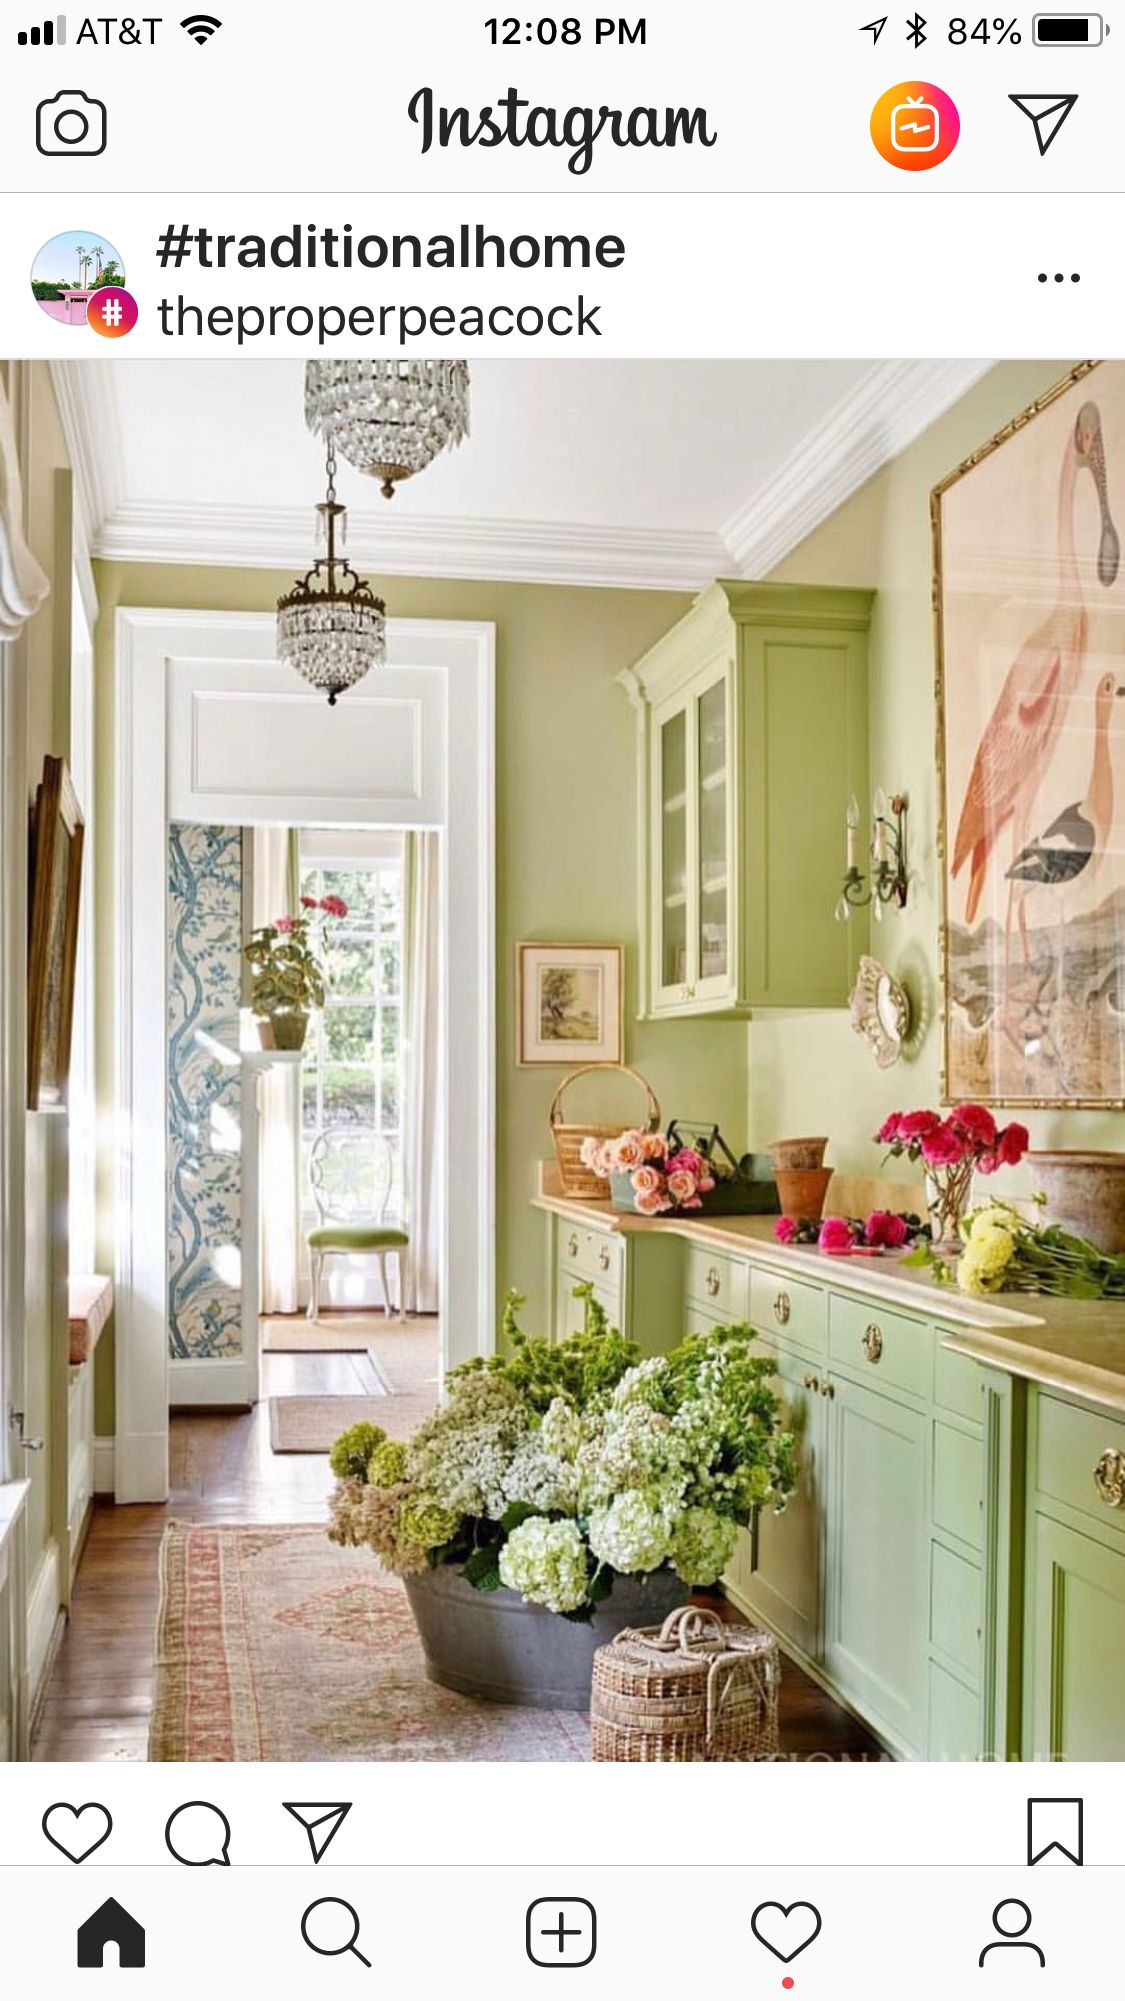 Pin By Rosemarie Silwanowicz On Design, Decorating & Trends -